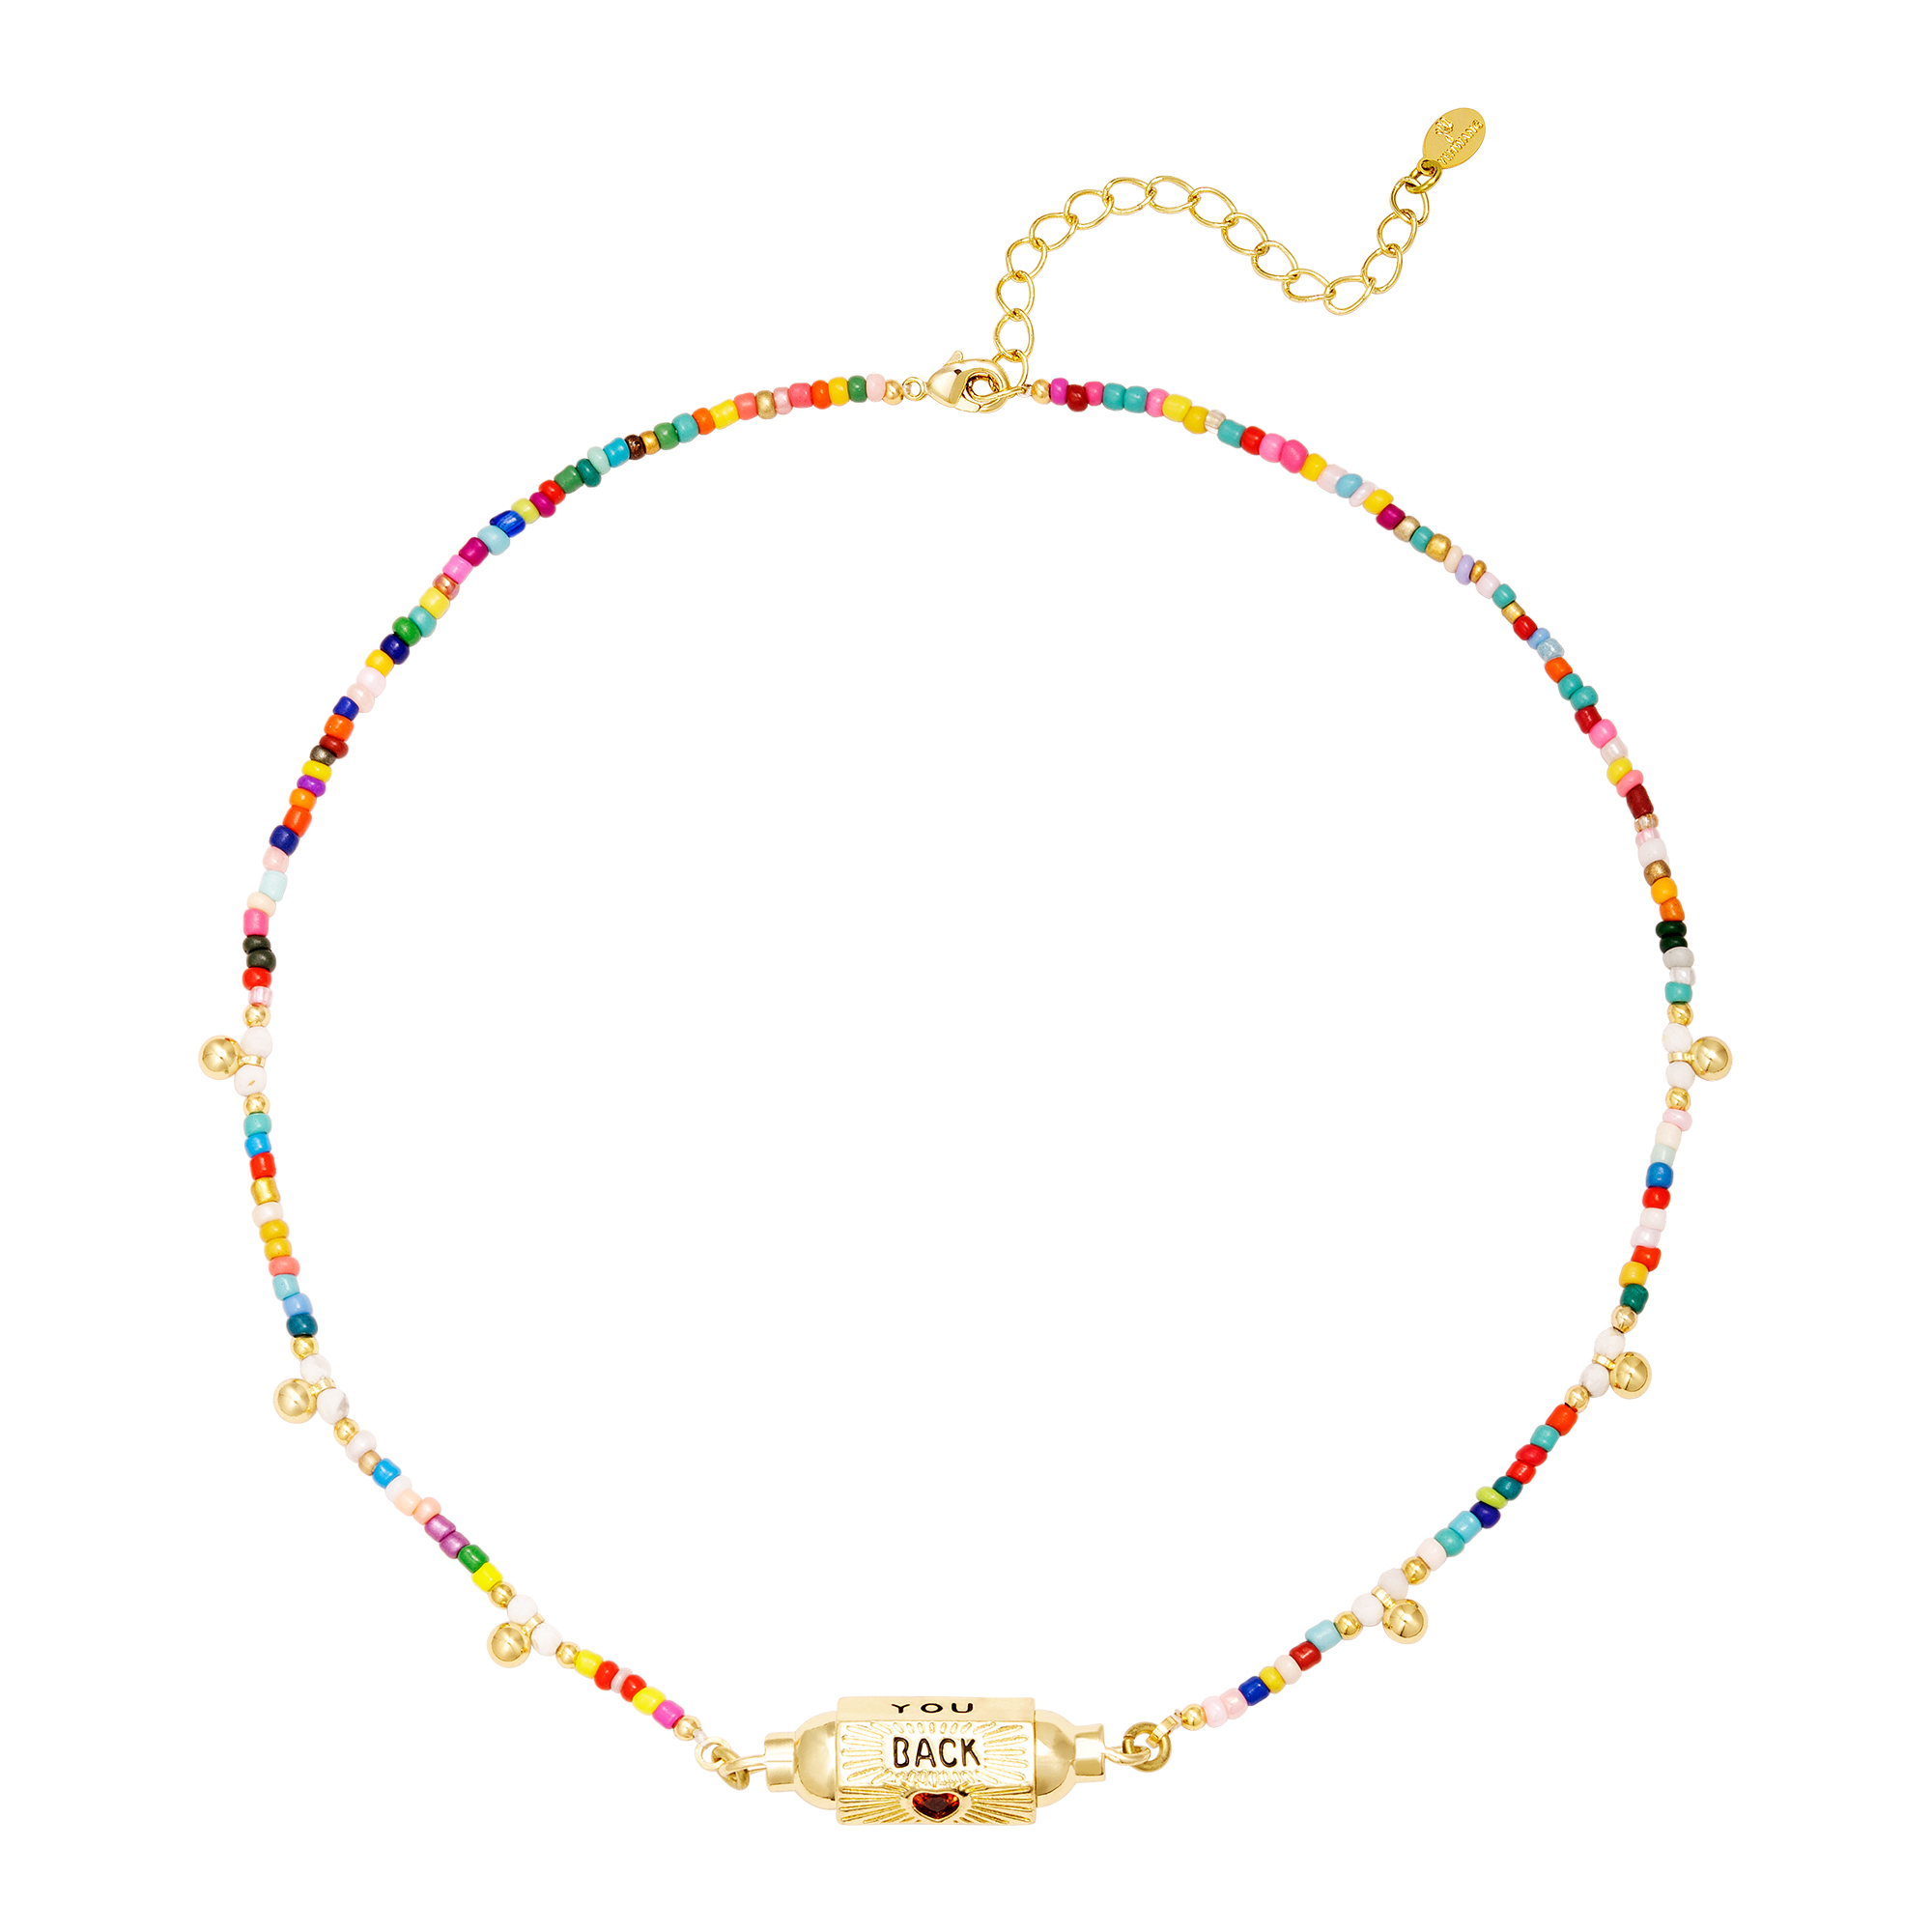 Beaded necklace with bead